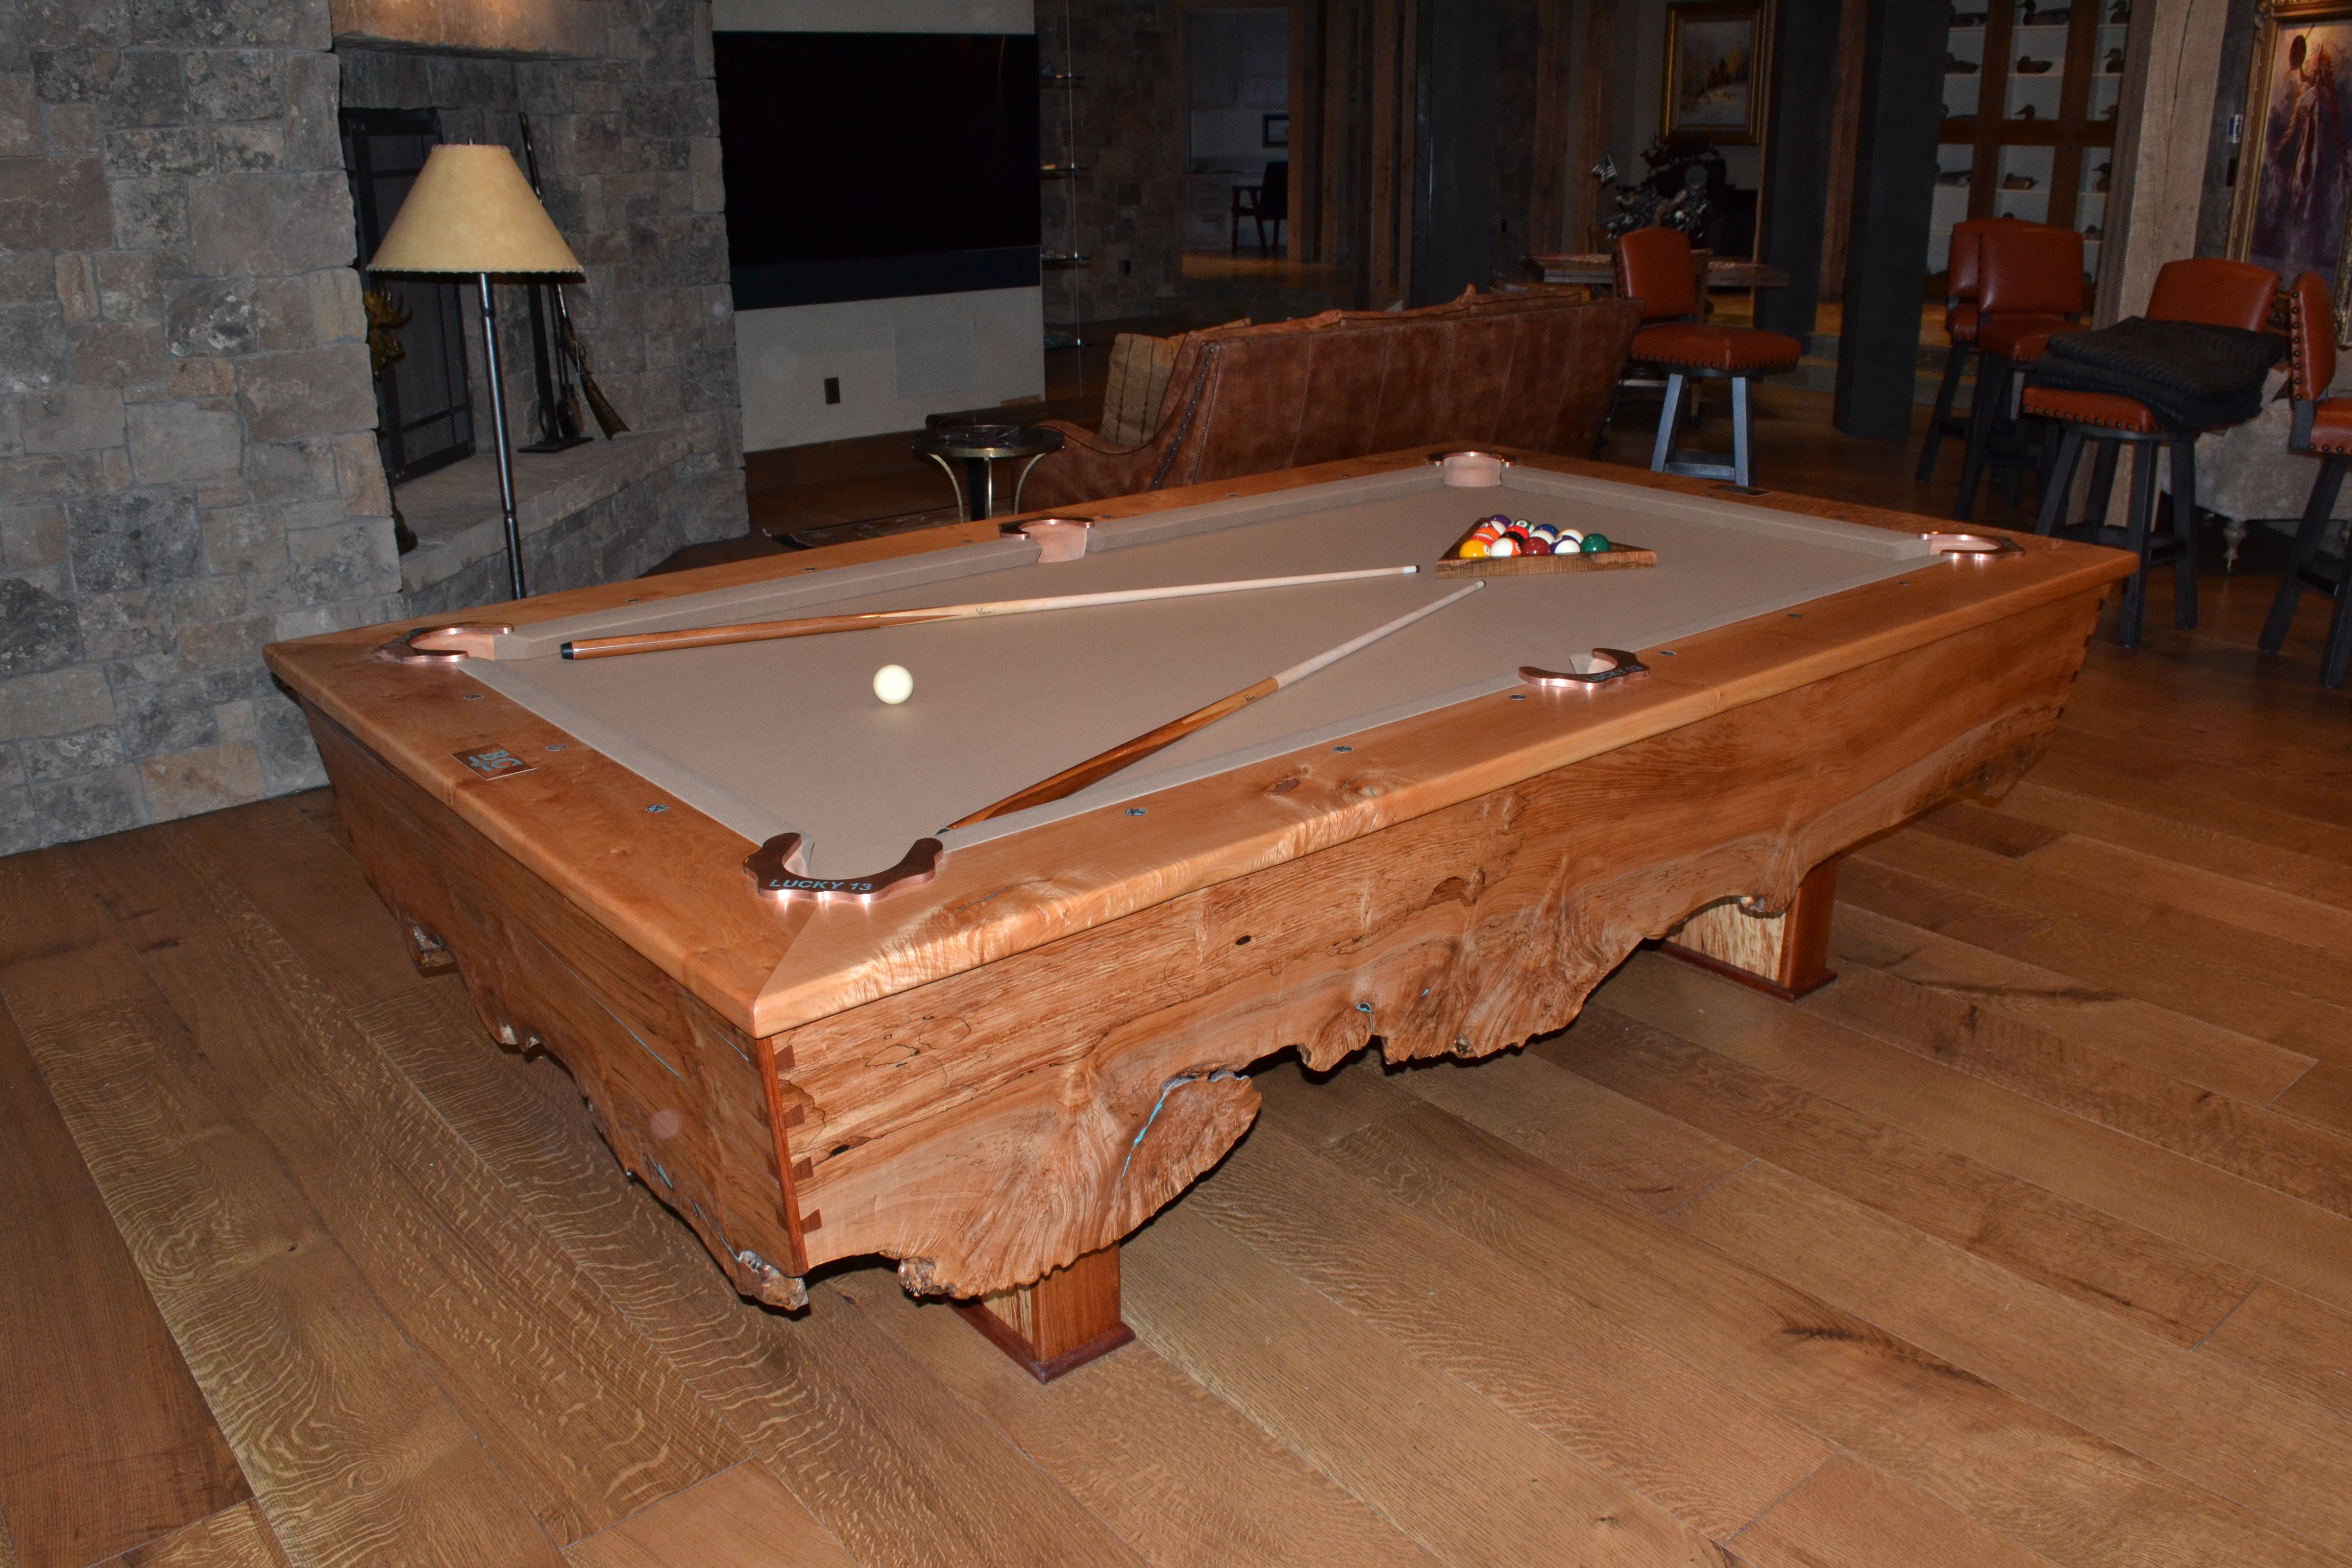 Custom pool table made from Big Leaf Maple and Jatoba